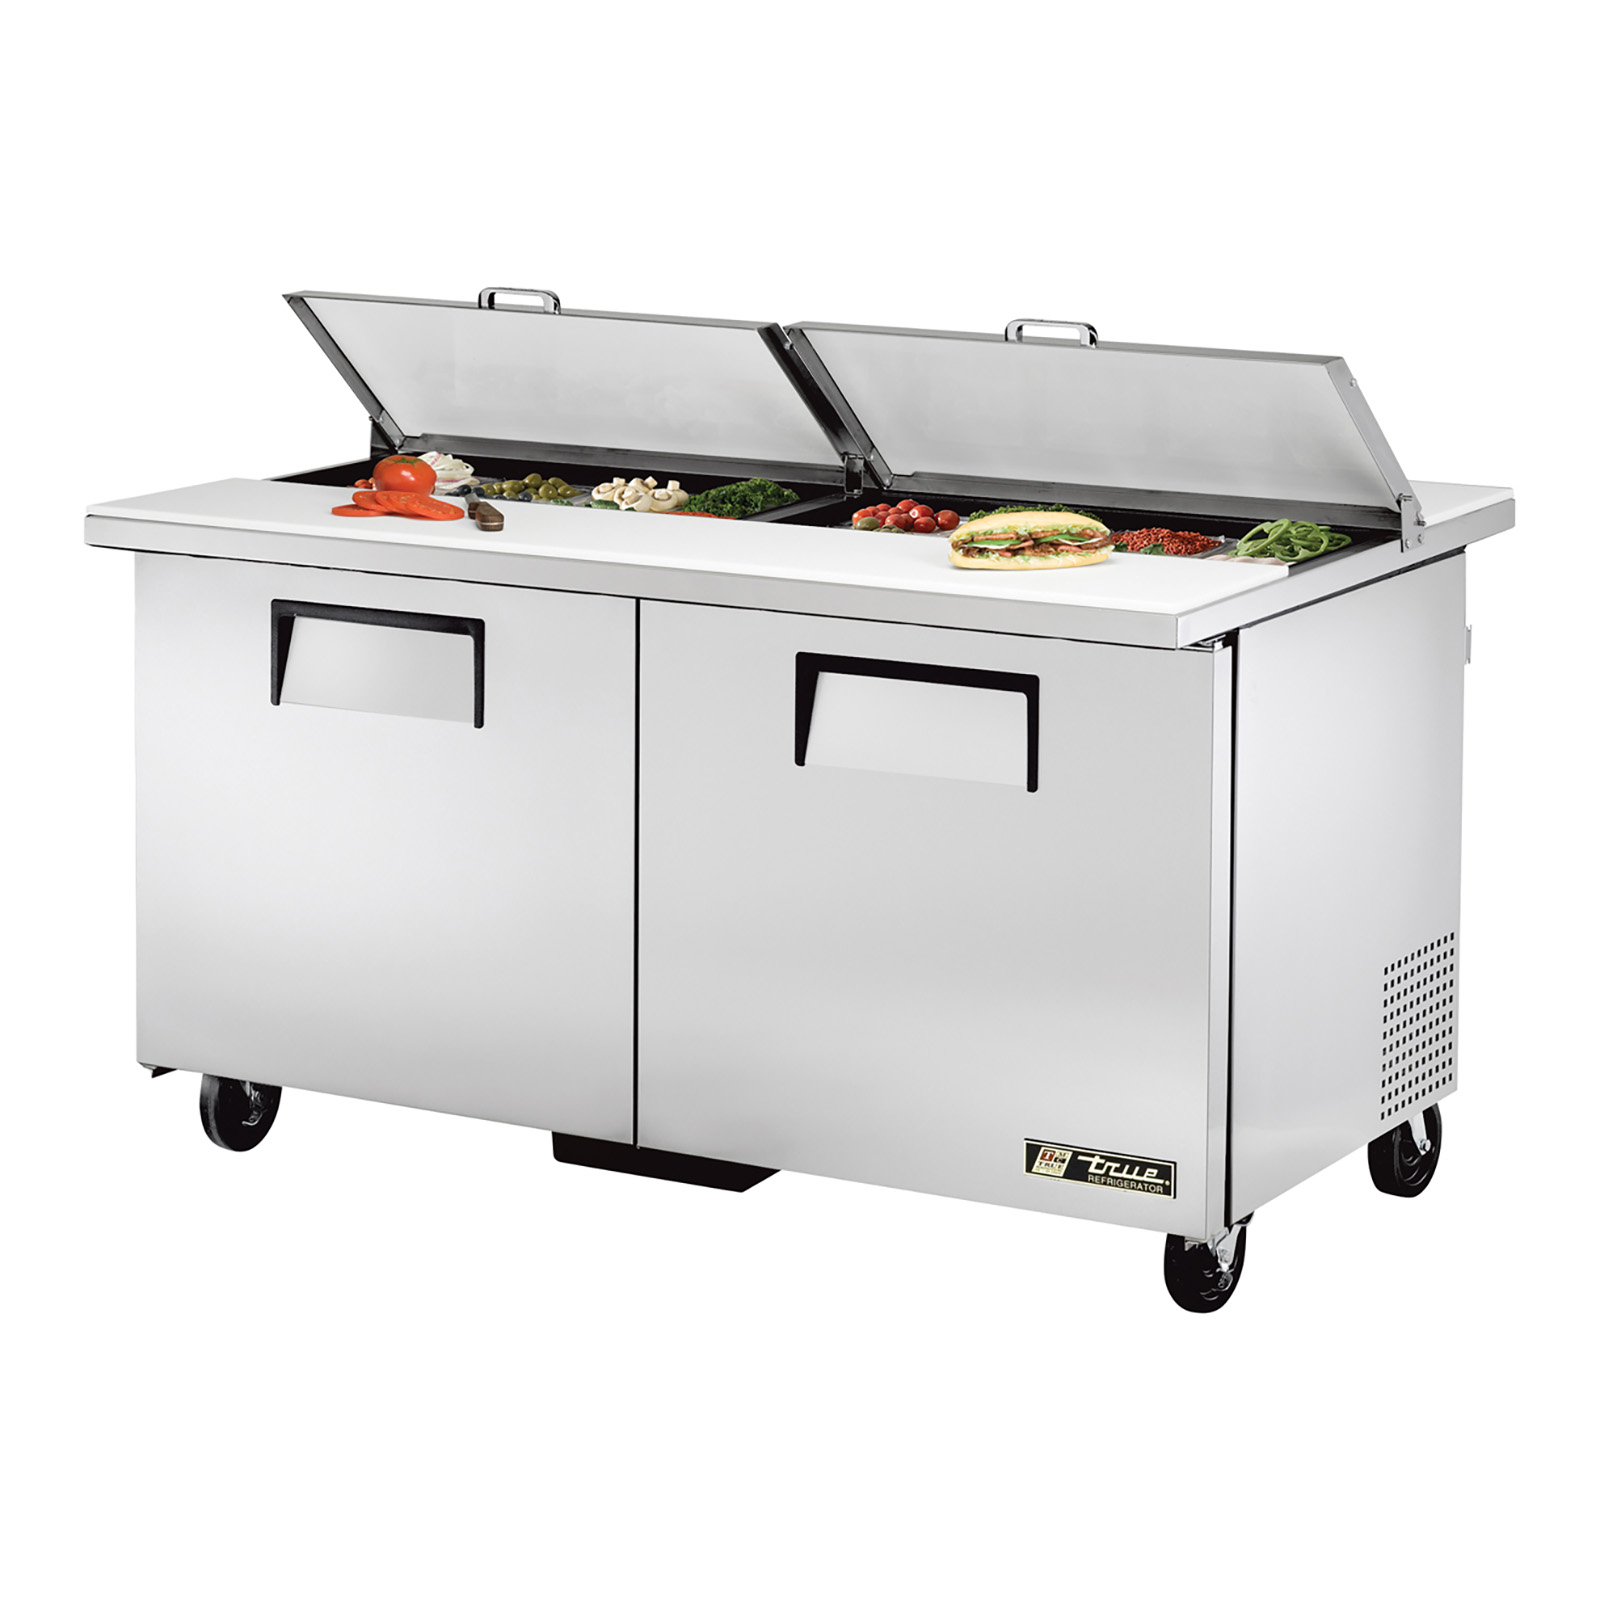 TSSU-60-16-DS-ST True - Dual Side Sandwich/Salad Unit (16) 1/6 size (4